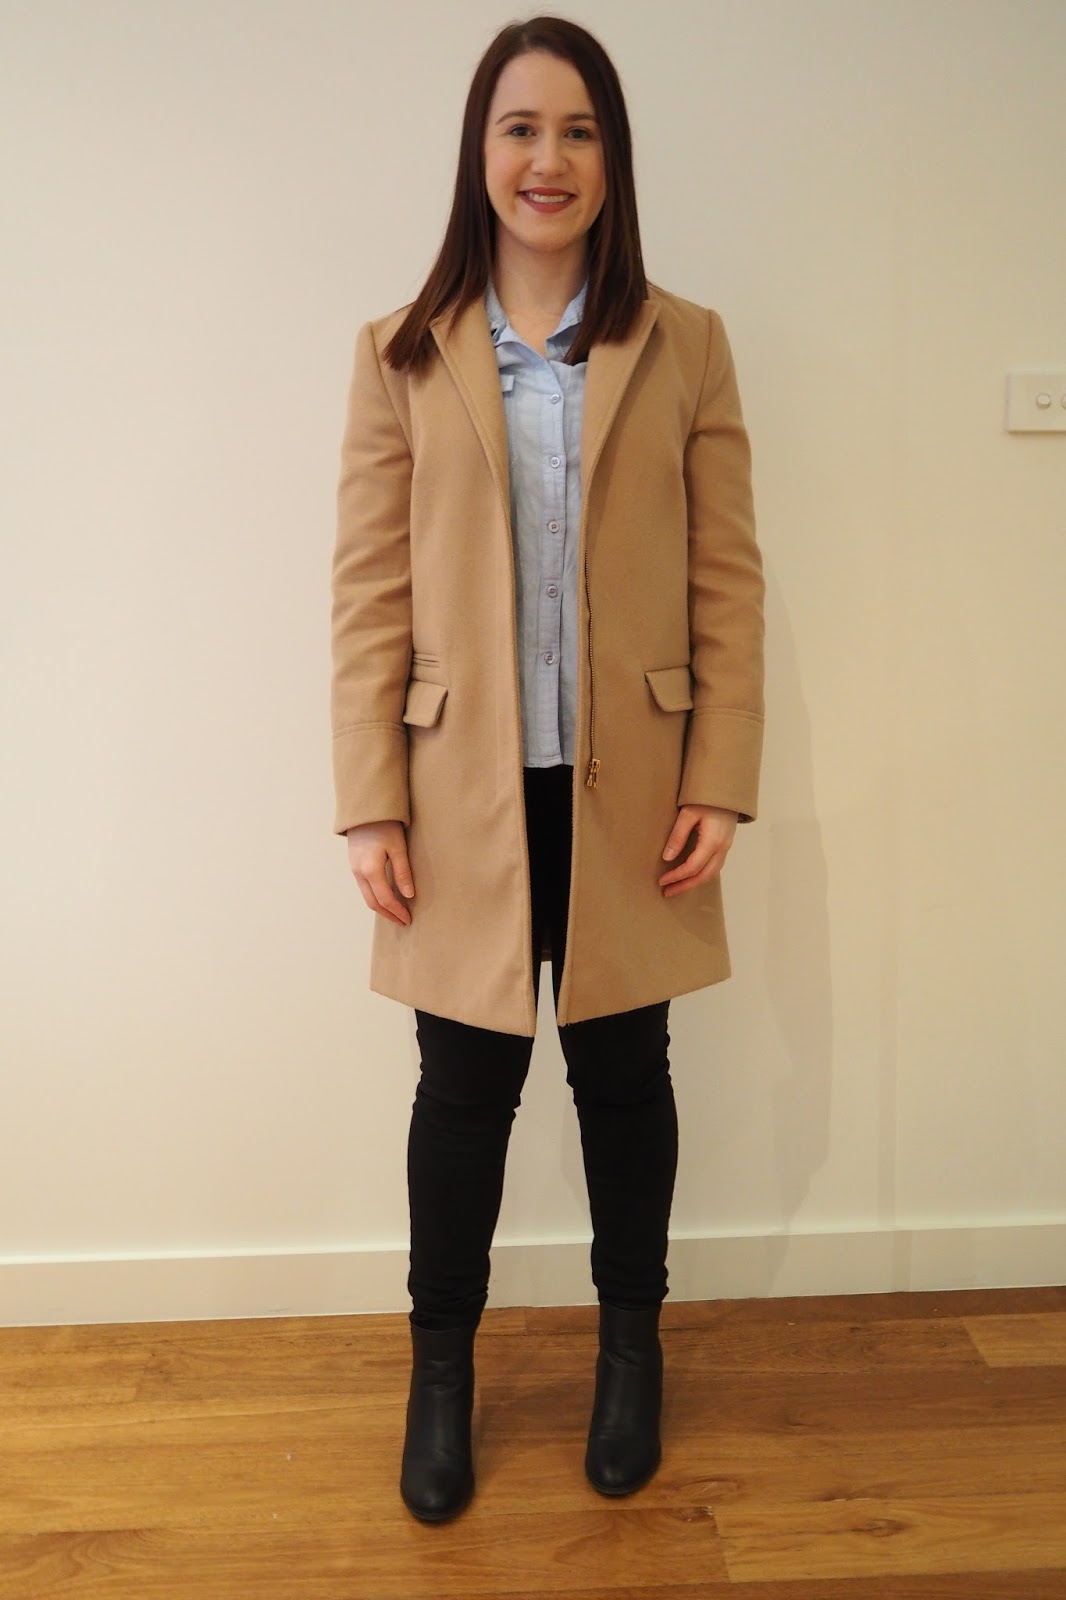 winter outfit, fall outfit, camel coat, black jeans, chambray shirt, black ankle boots